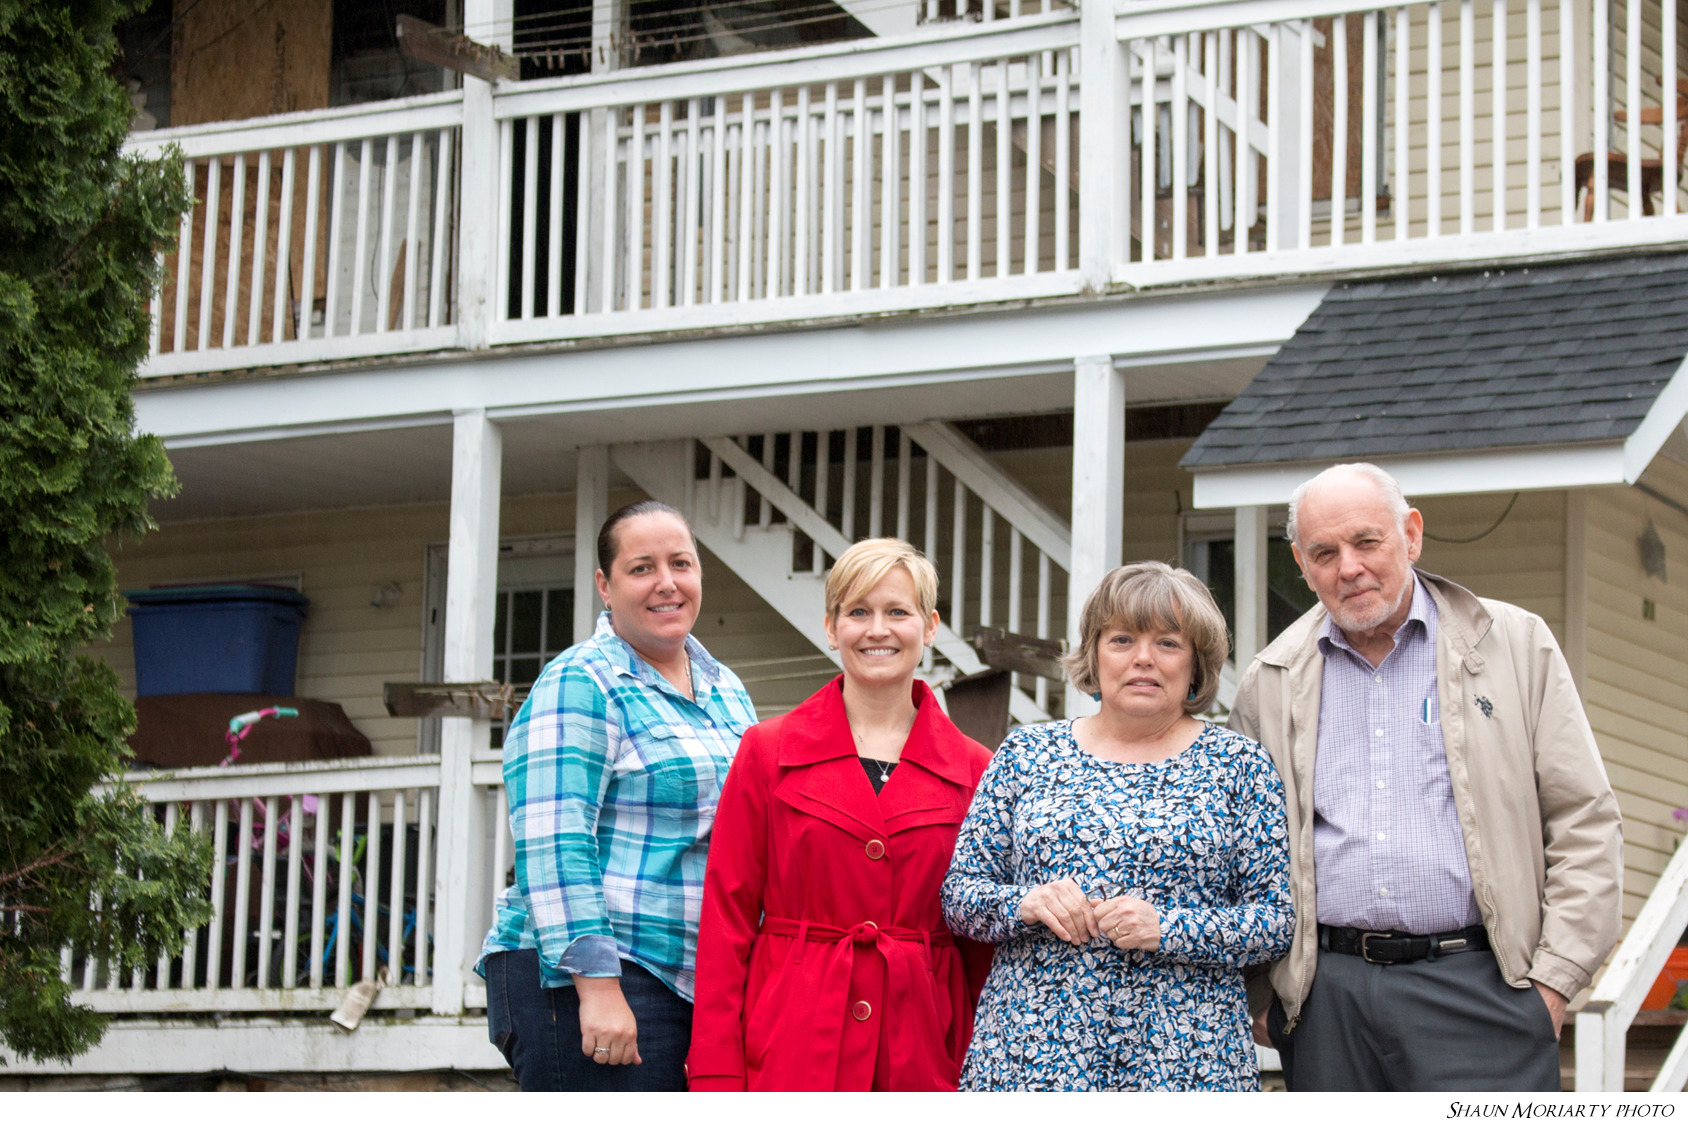 Fortunate timing helps save lives in Southbridge blaze